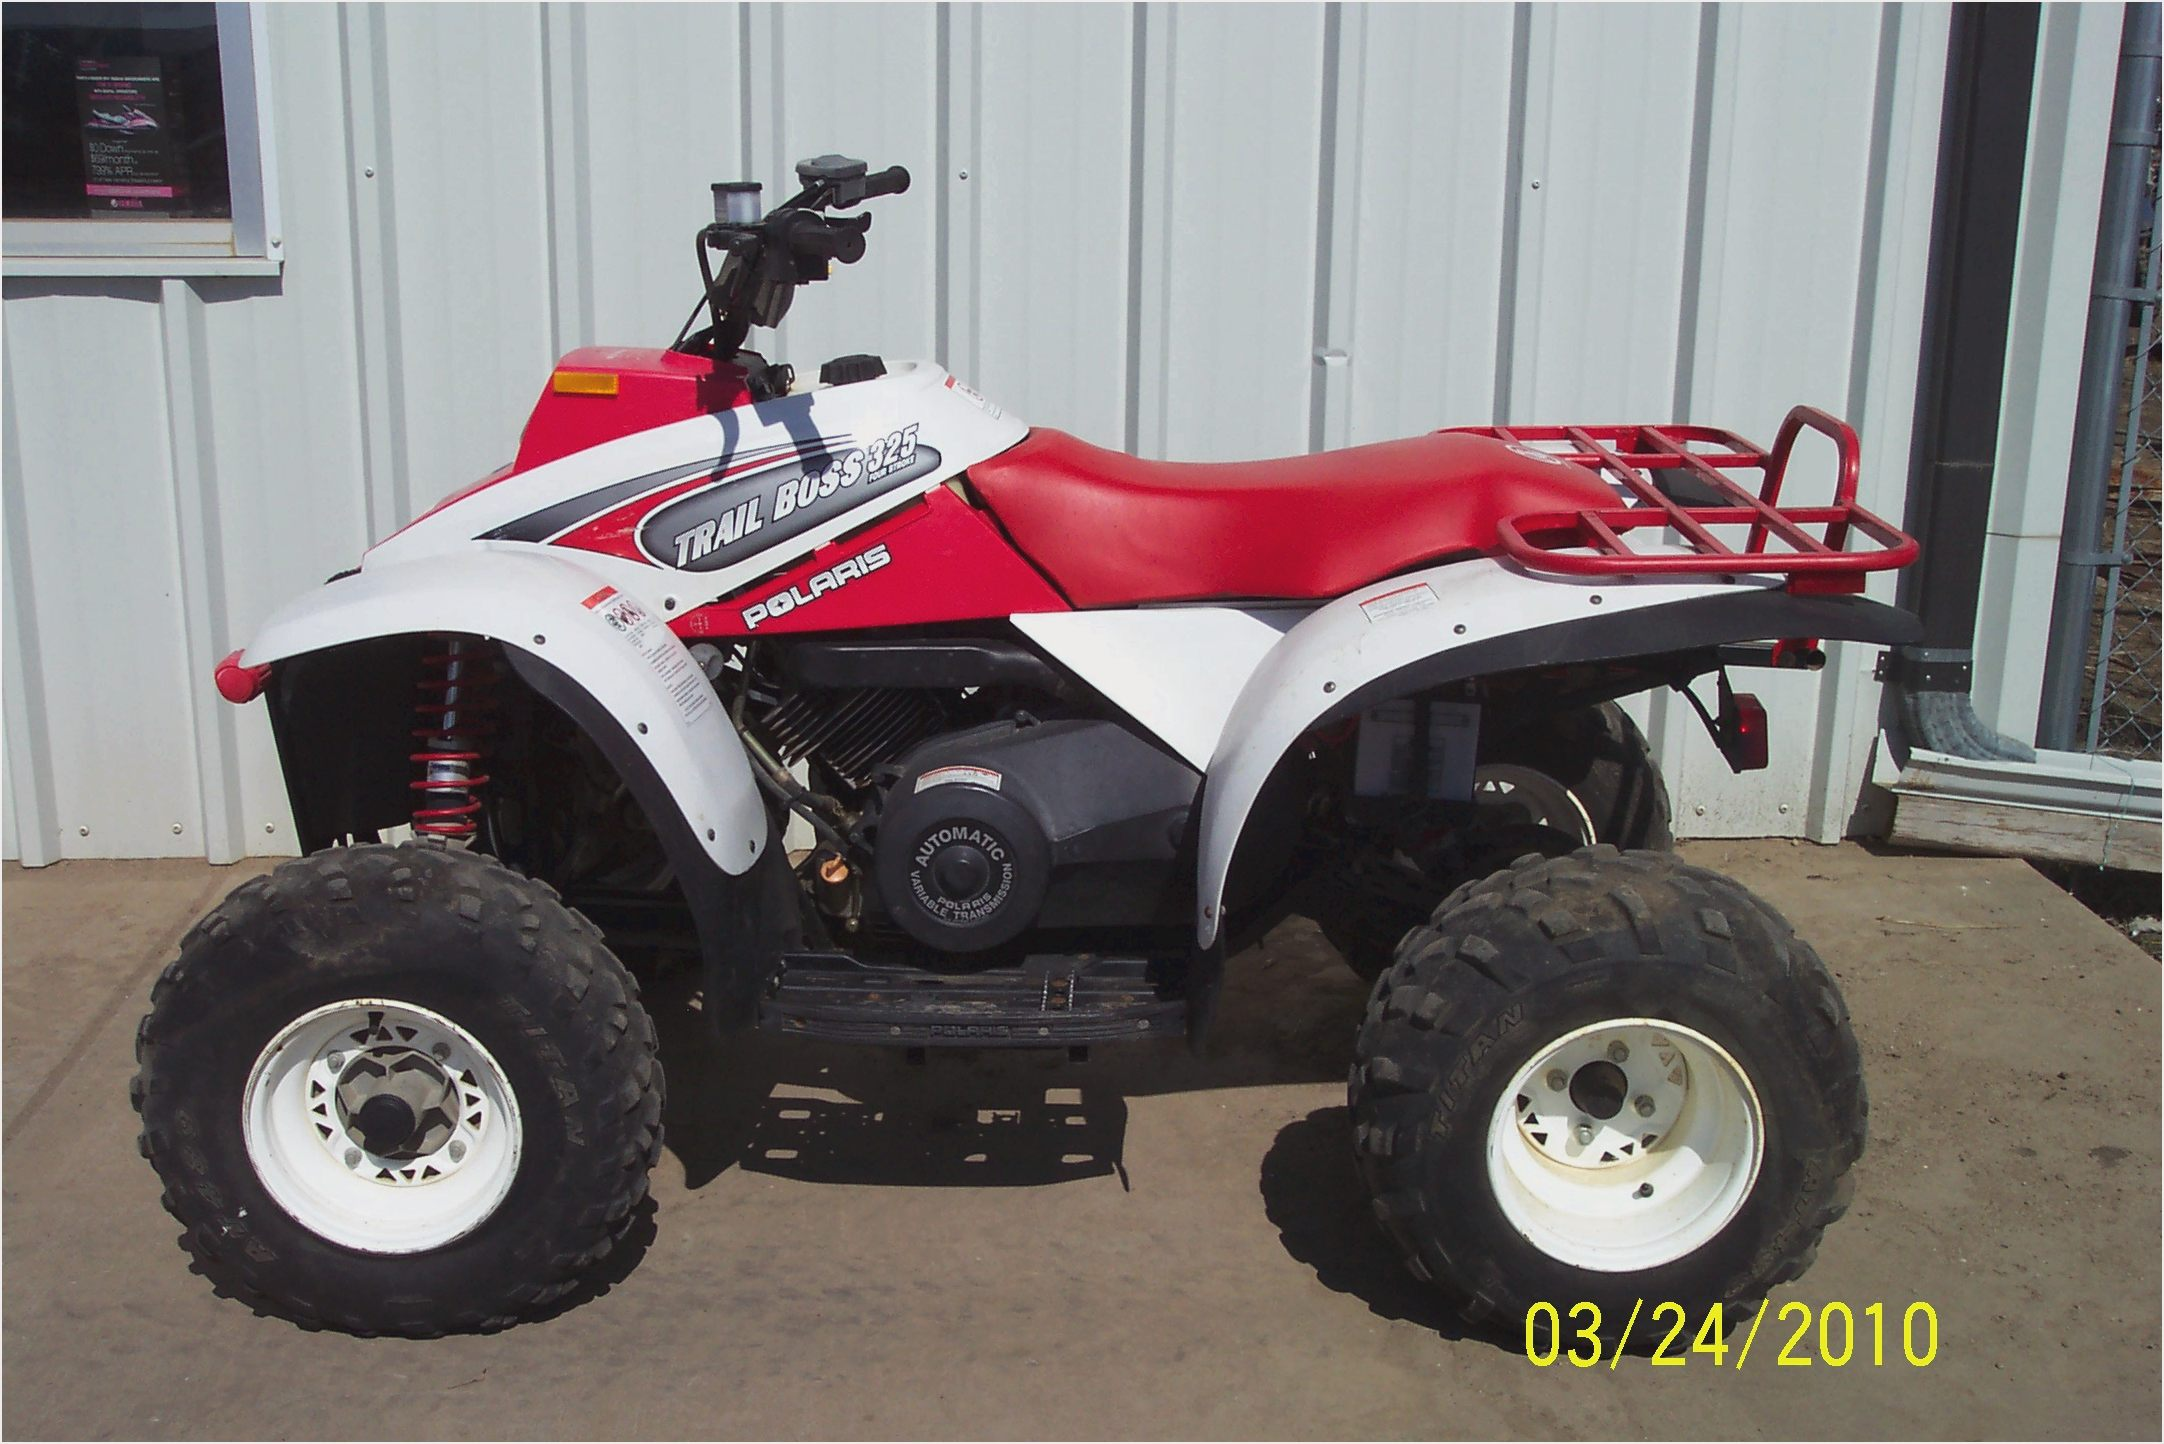 Polaris Trail Boss 325 2002 images #120553